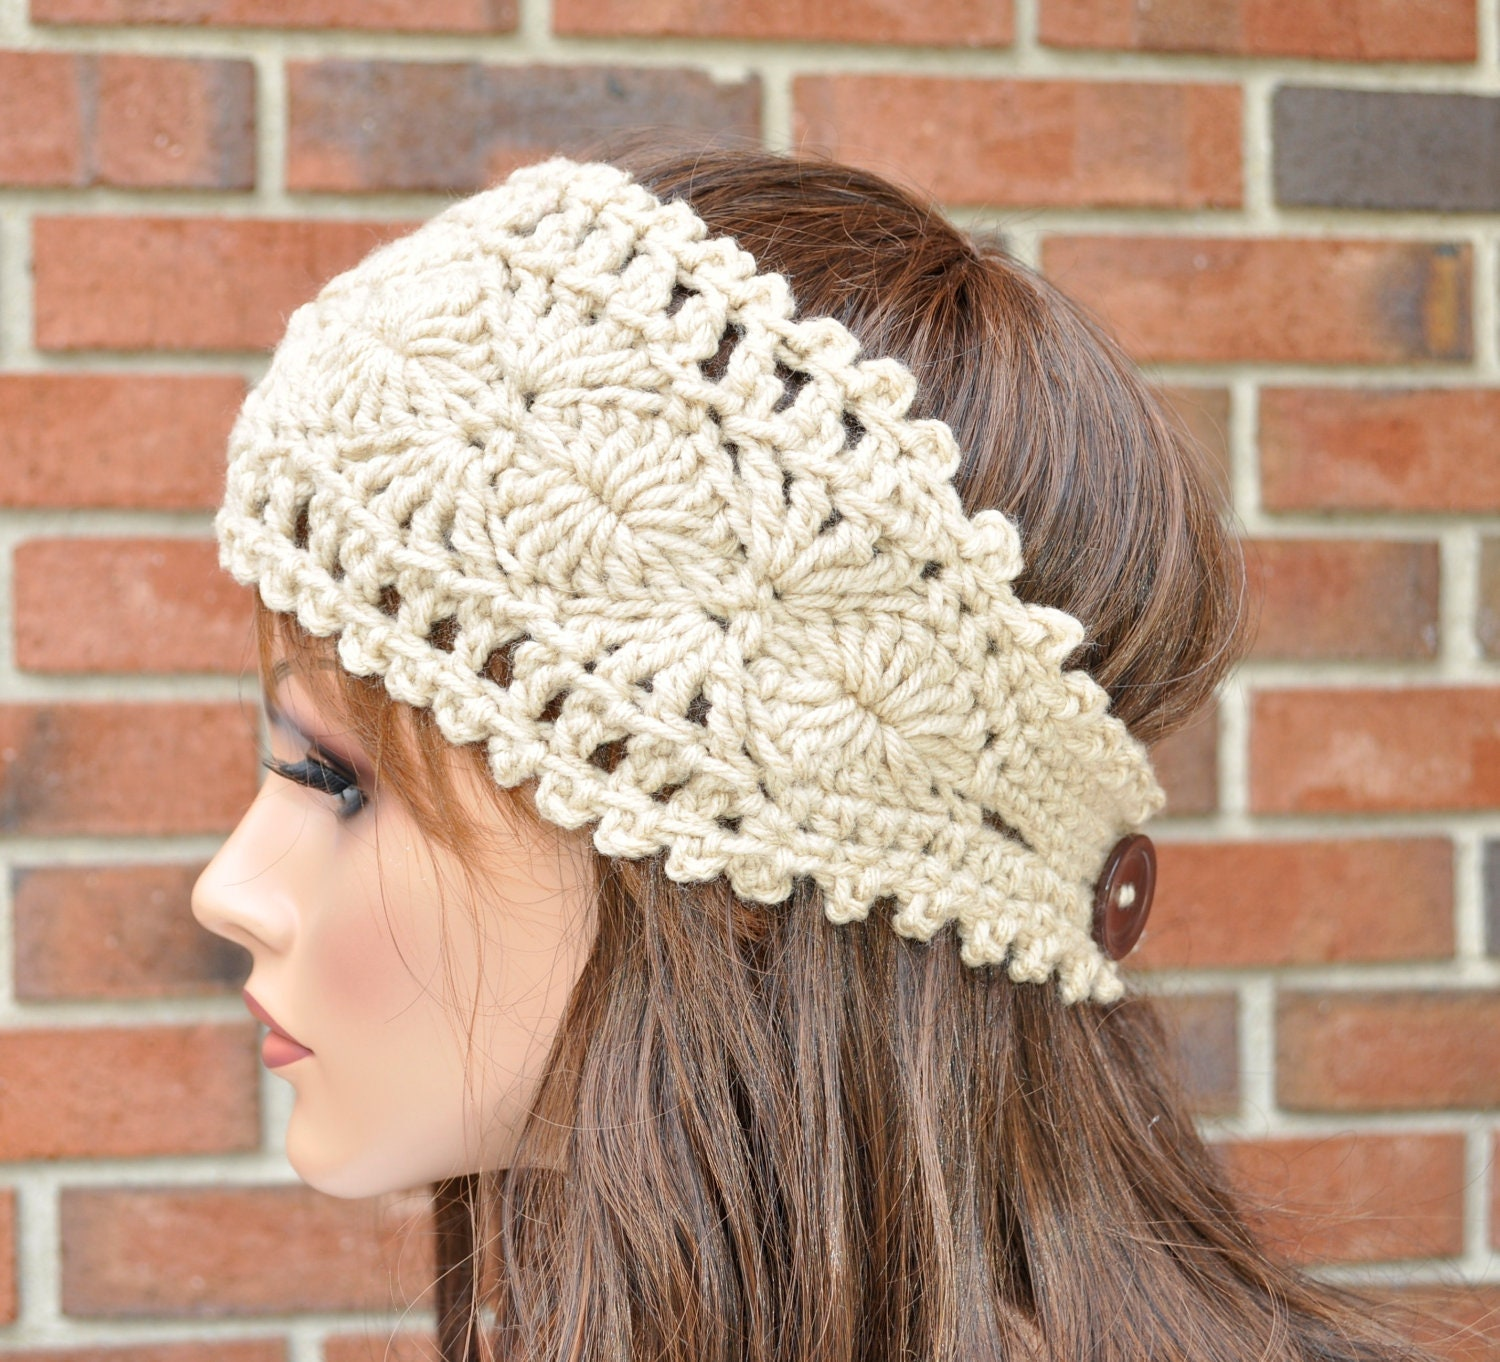 Free Crochet Pattern Headband Ear Warmer Button : Crochet Ear Warmer Handmade Accessory Womens Crochet Headband